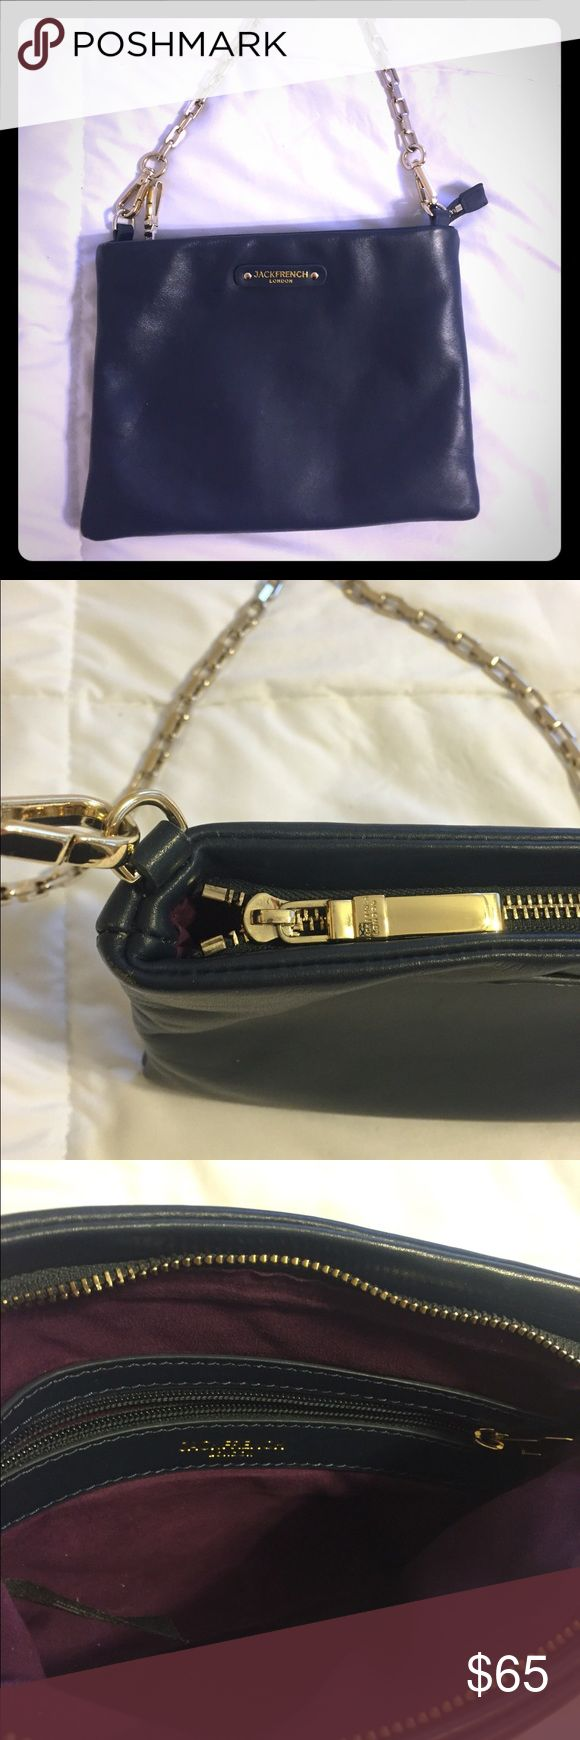 Jack French London crossbody bag This is a great bag for a day out! I bought this about a year ago but only used it once in a while when I was going to be out all day and didn't want to carry around a huge hand bag. Genuine leather with gold colored hardware. Feel free to make an offer :) Bags Crossbody Bags